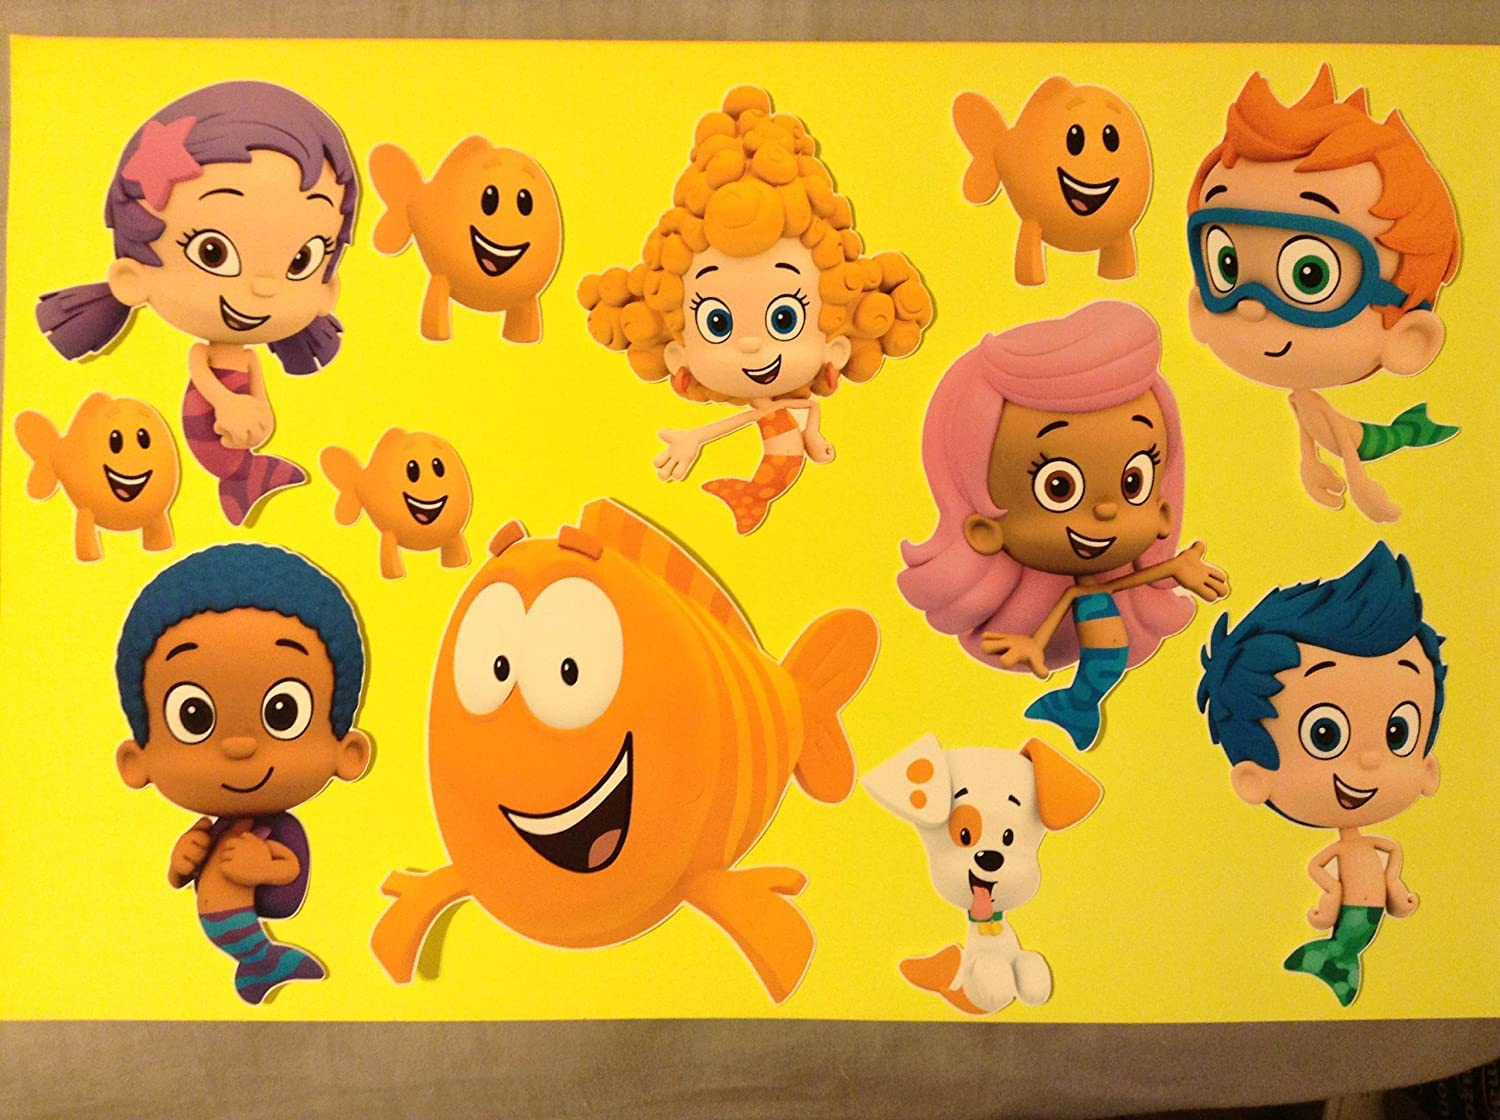 bubble guppies set of 8 removable wall stickers 6 bubble guppies set of 8 removable wall stickers 6